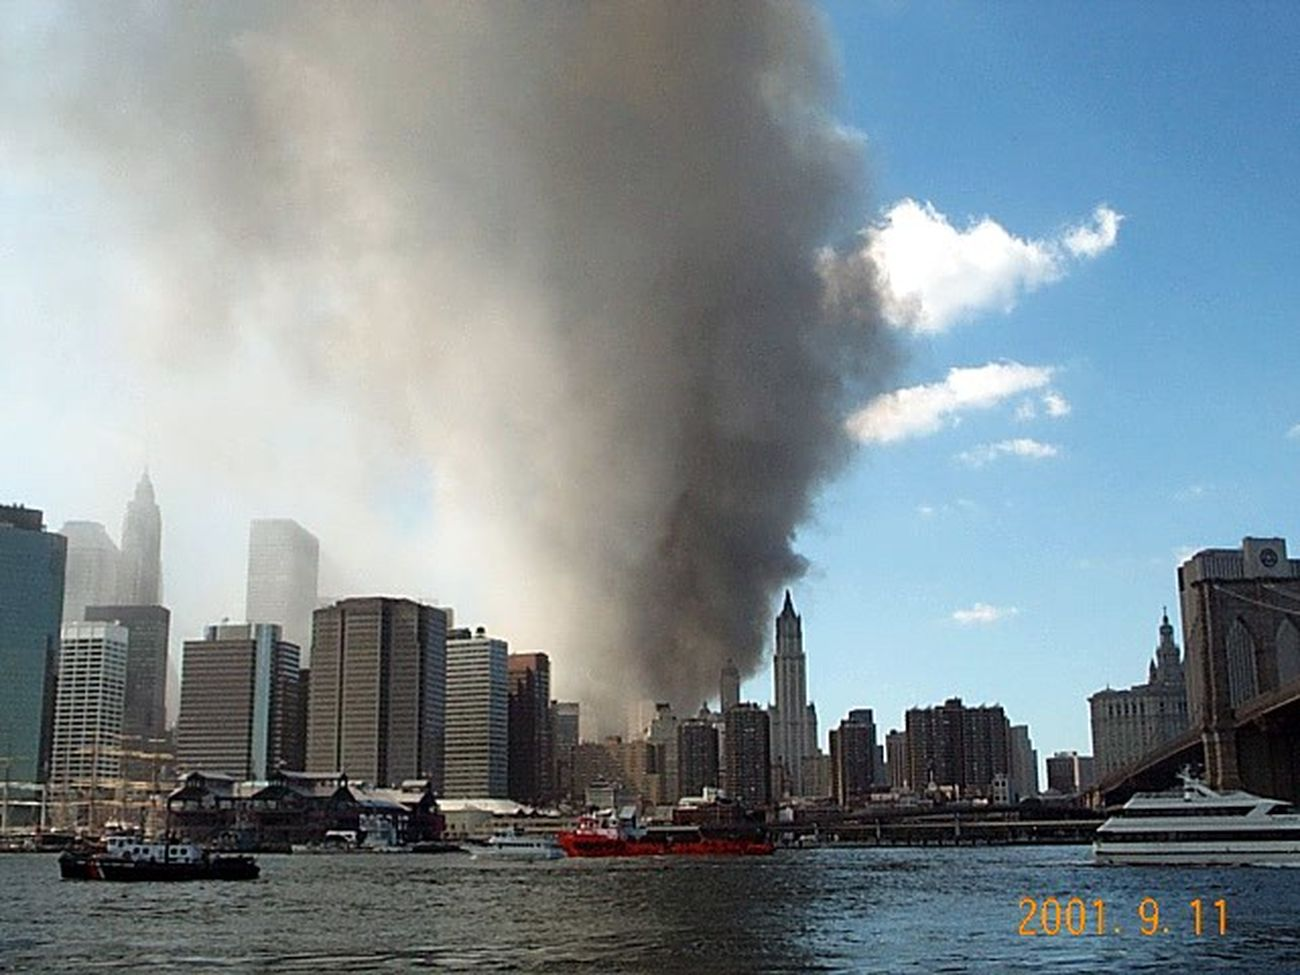 9-11 9-11-2001 9/ 11 911 911worldtradememorial R.I.P To Does Who Died In 9:11 Smoke World Trade Center WTC